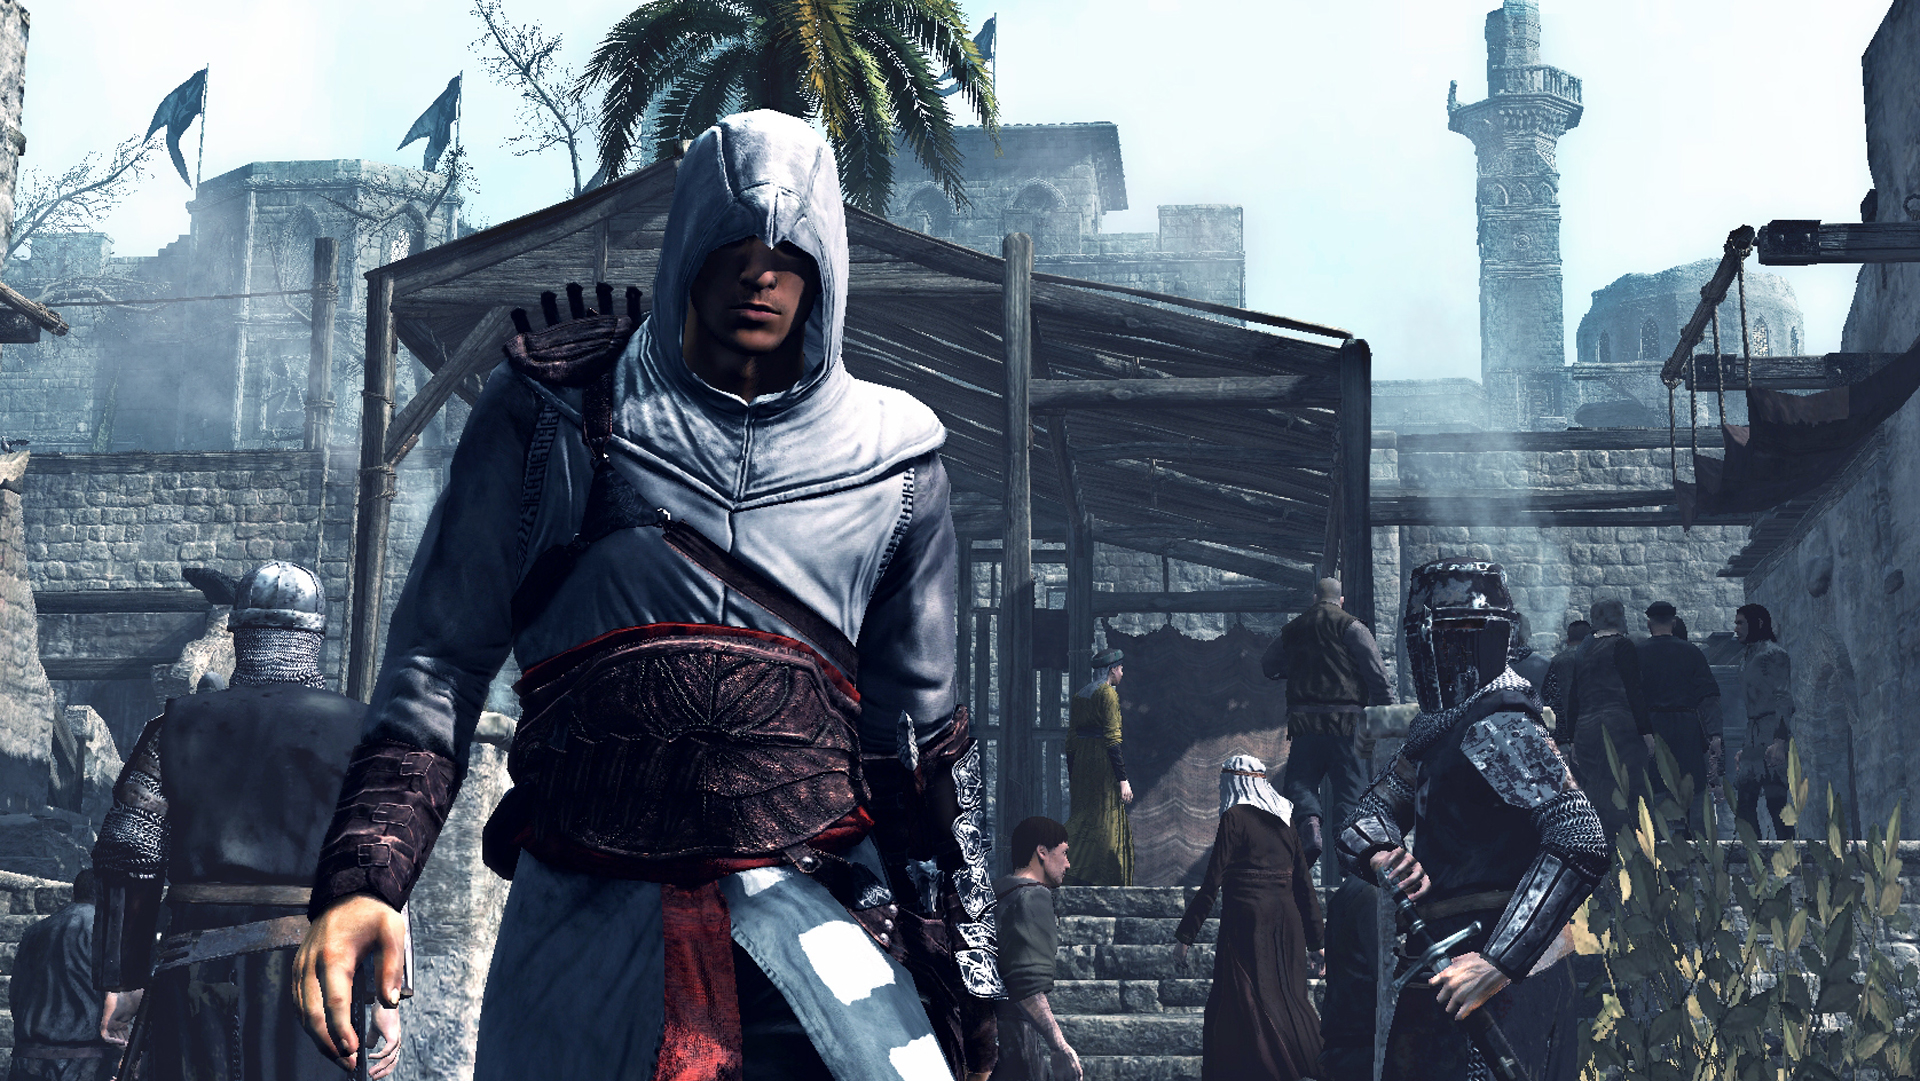 assassins_creed_1080_3.jpg